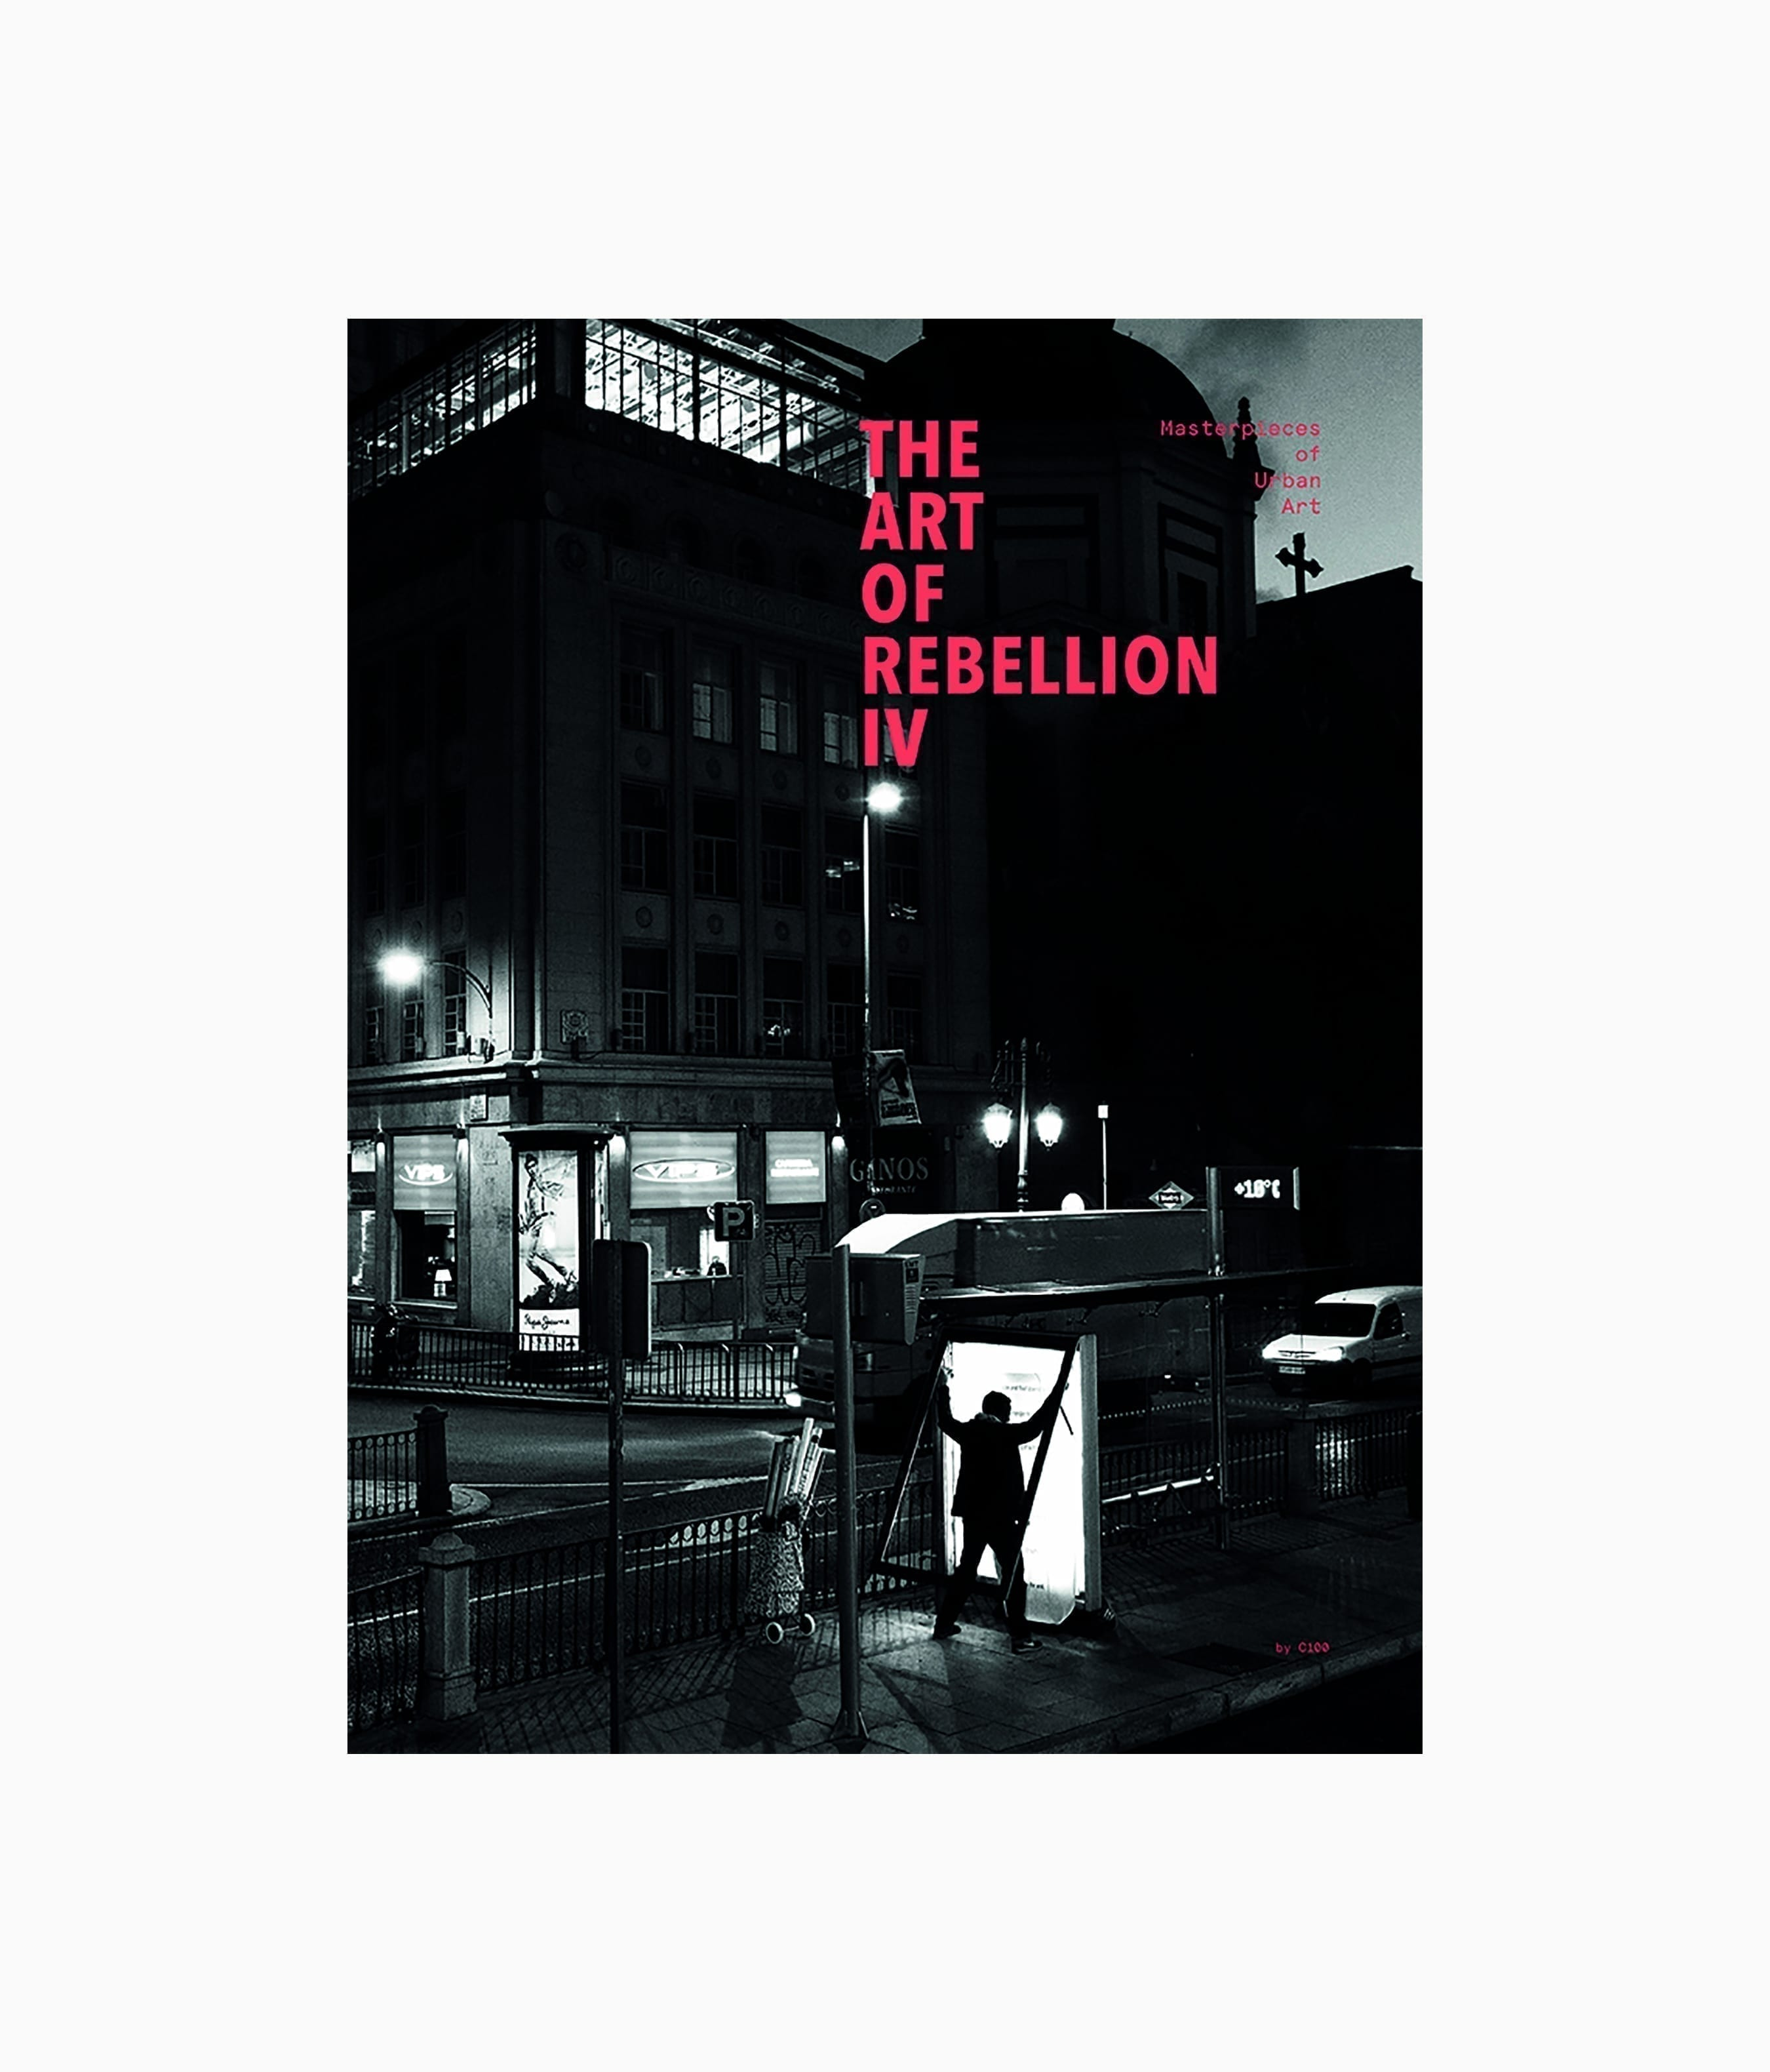 The Art of Rebellion #4 Publikat Verlag Graffiti und Street Art Buchcover